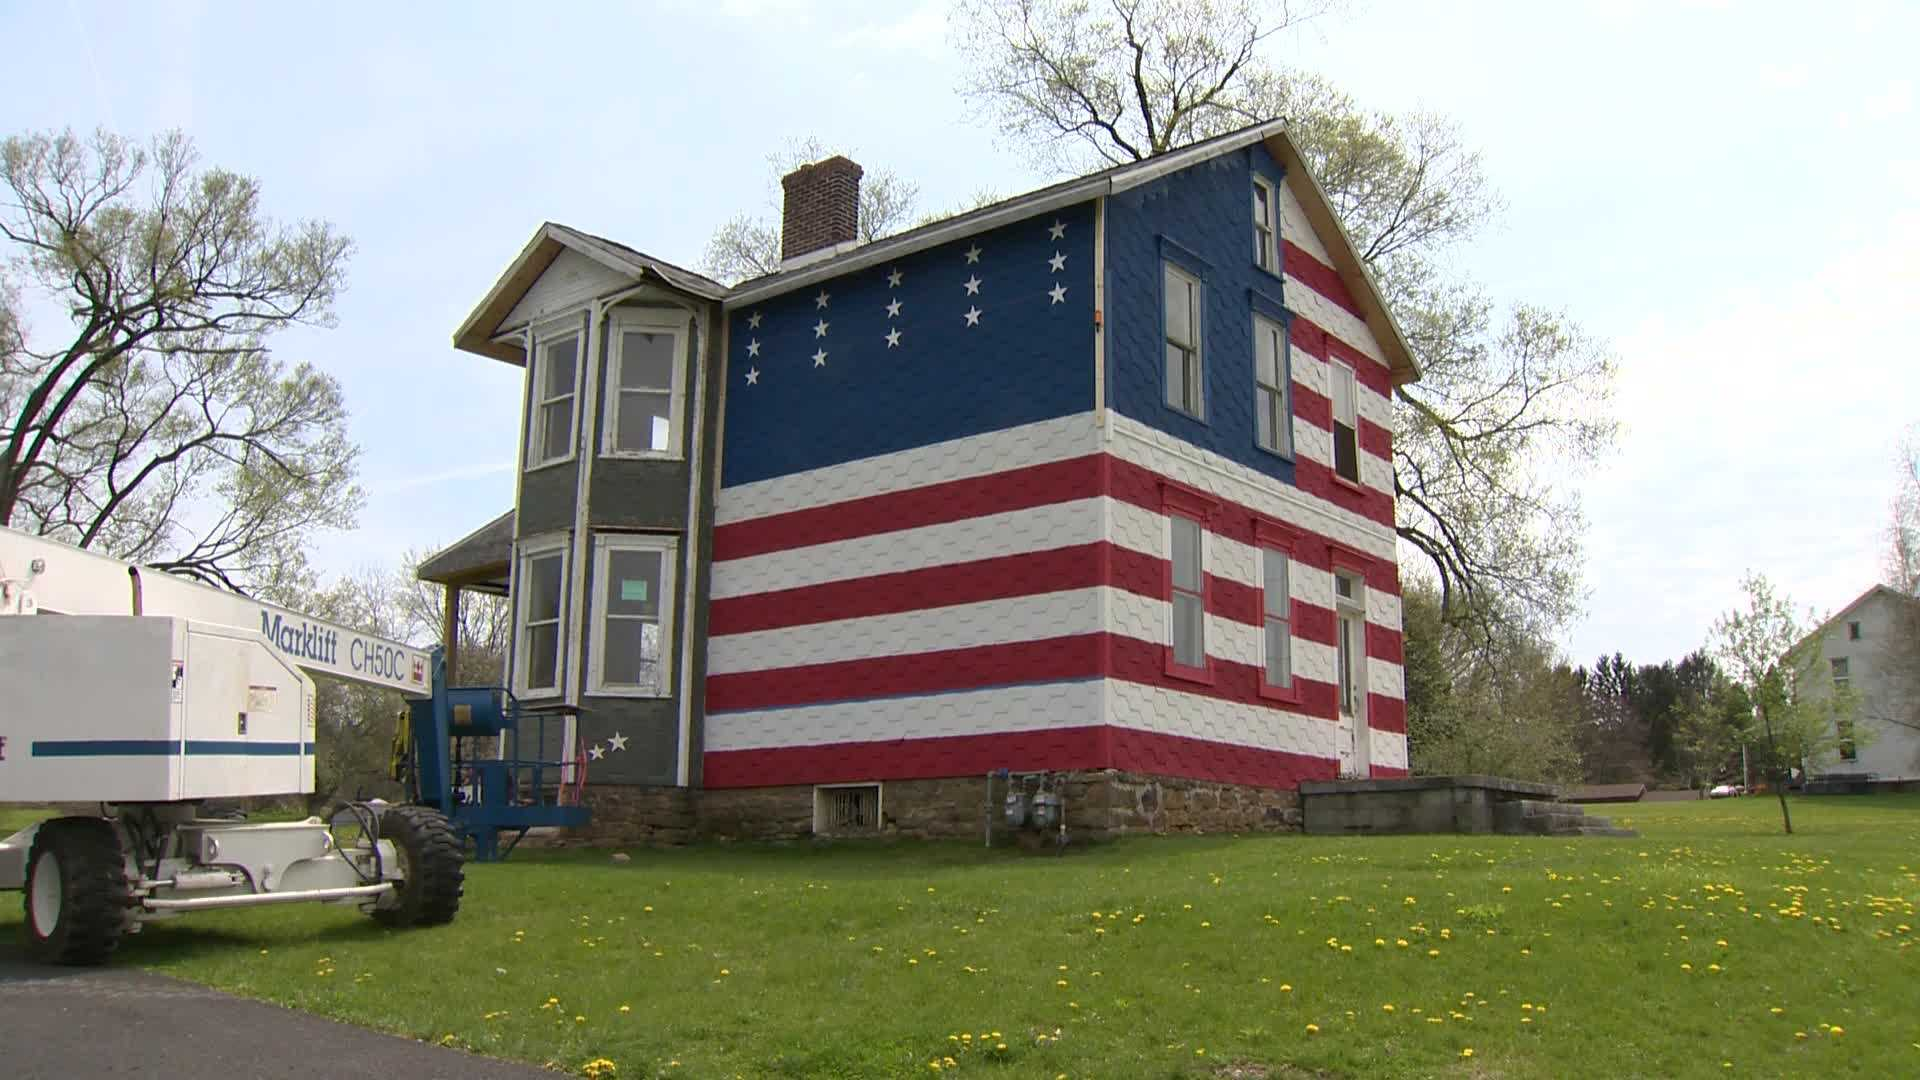 Trump supporter paints house red, white & blue